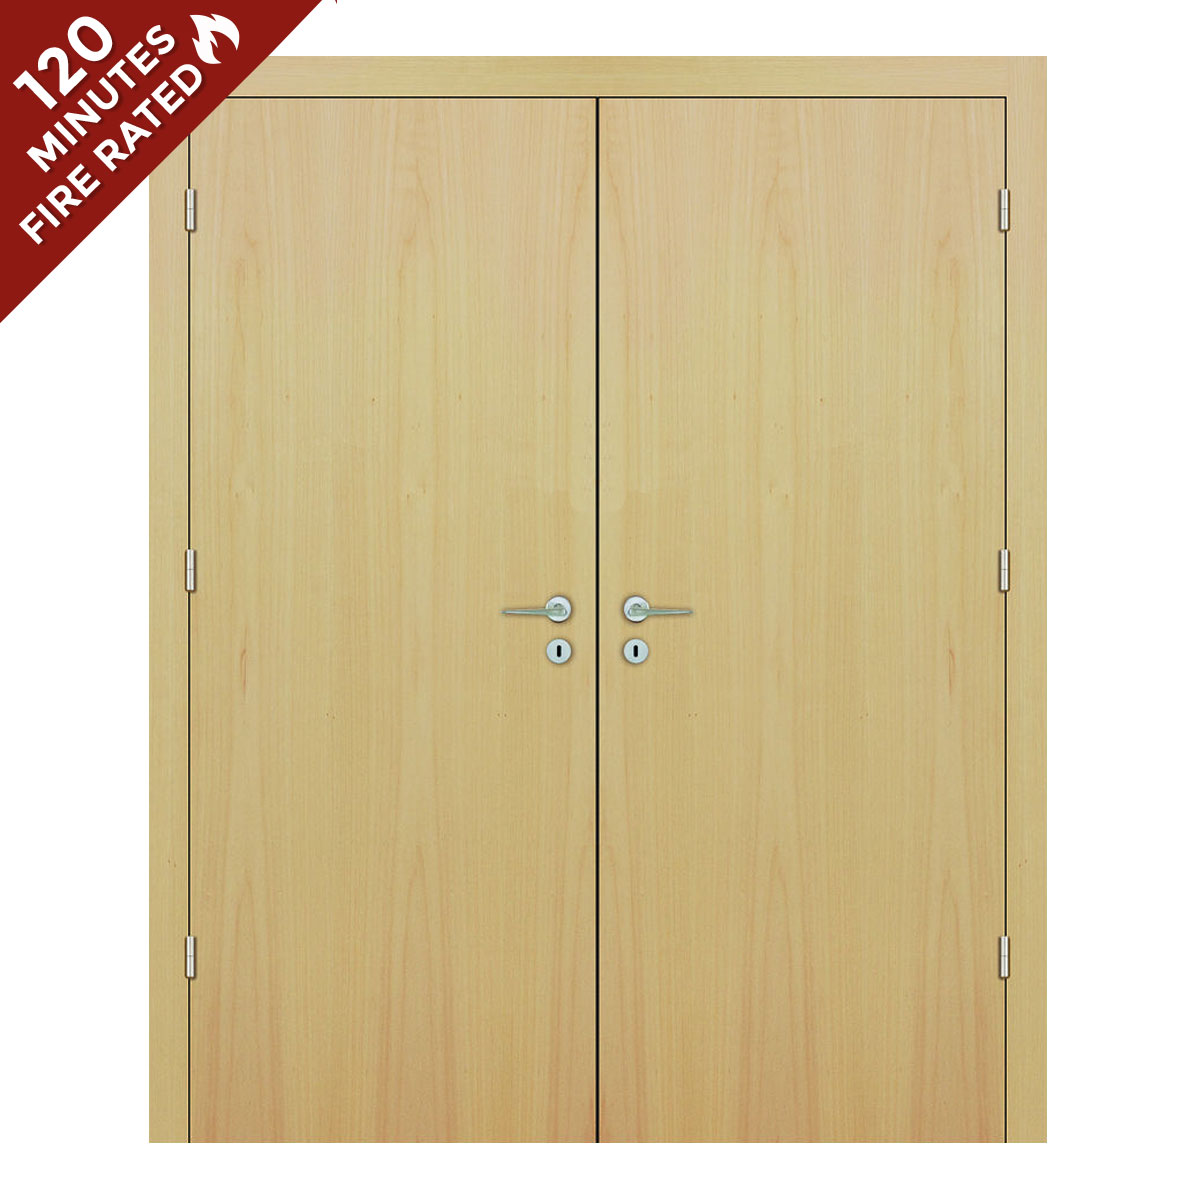 Maple Double Door FD120